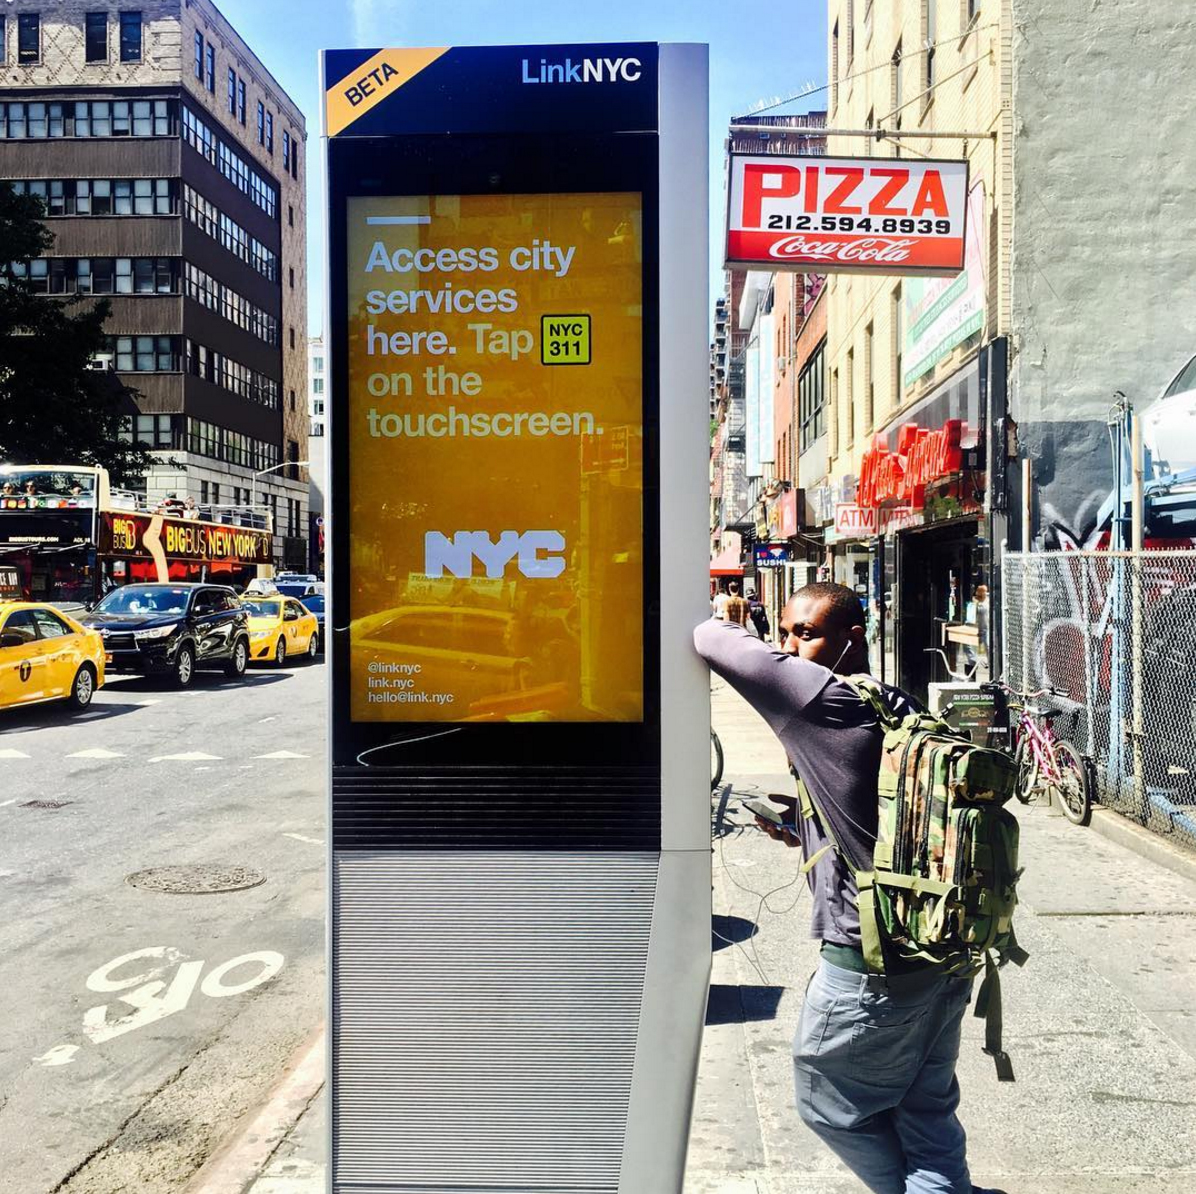 A LinkNYC kiosk. Credit: @linknycofficial on Instagram